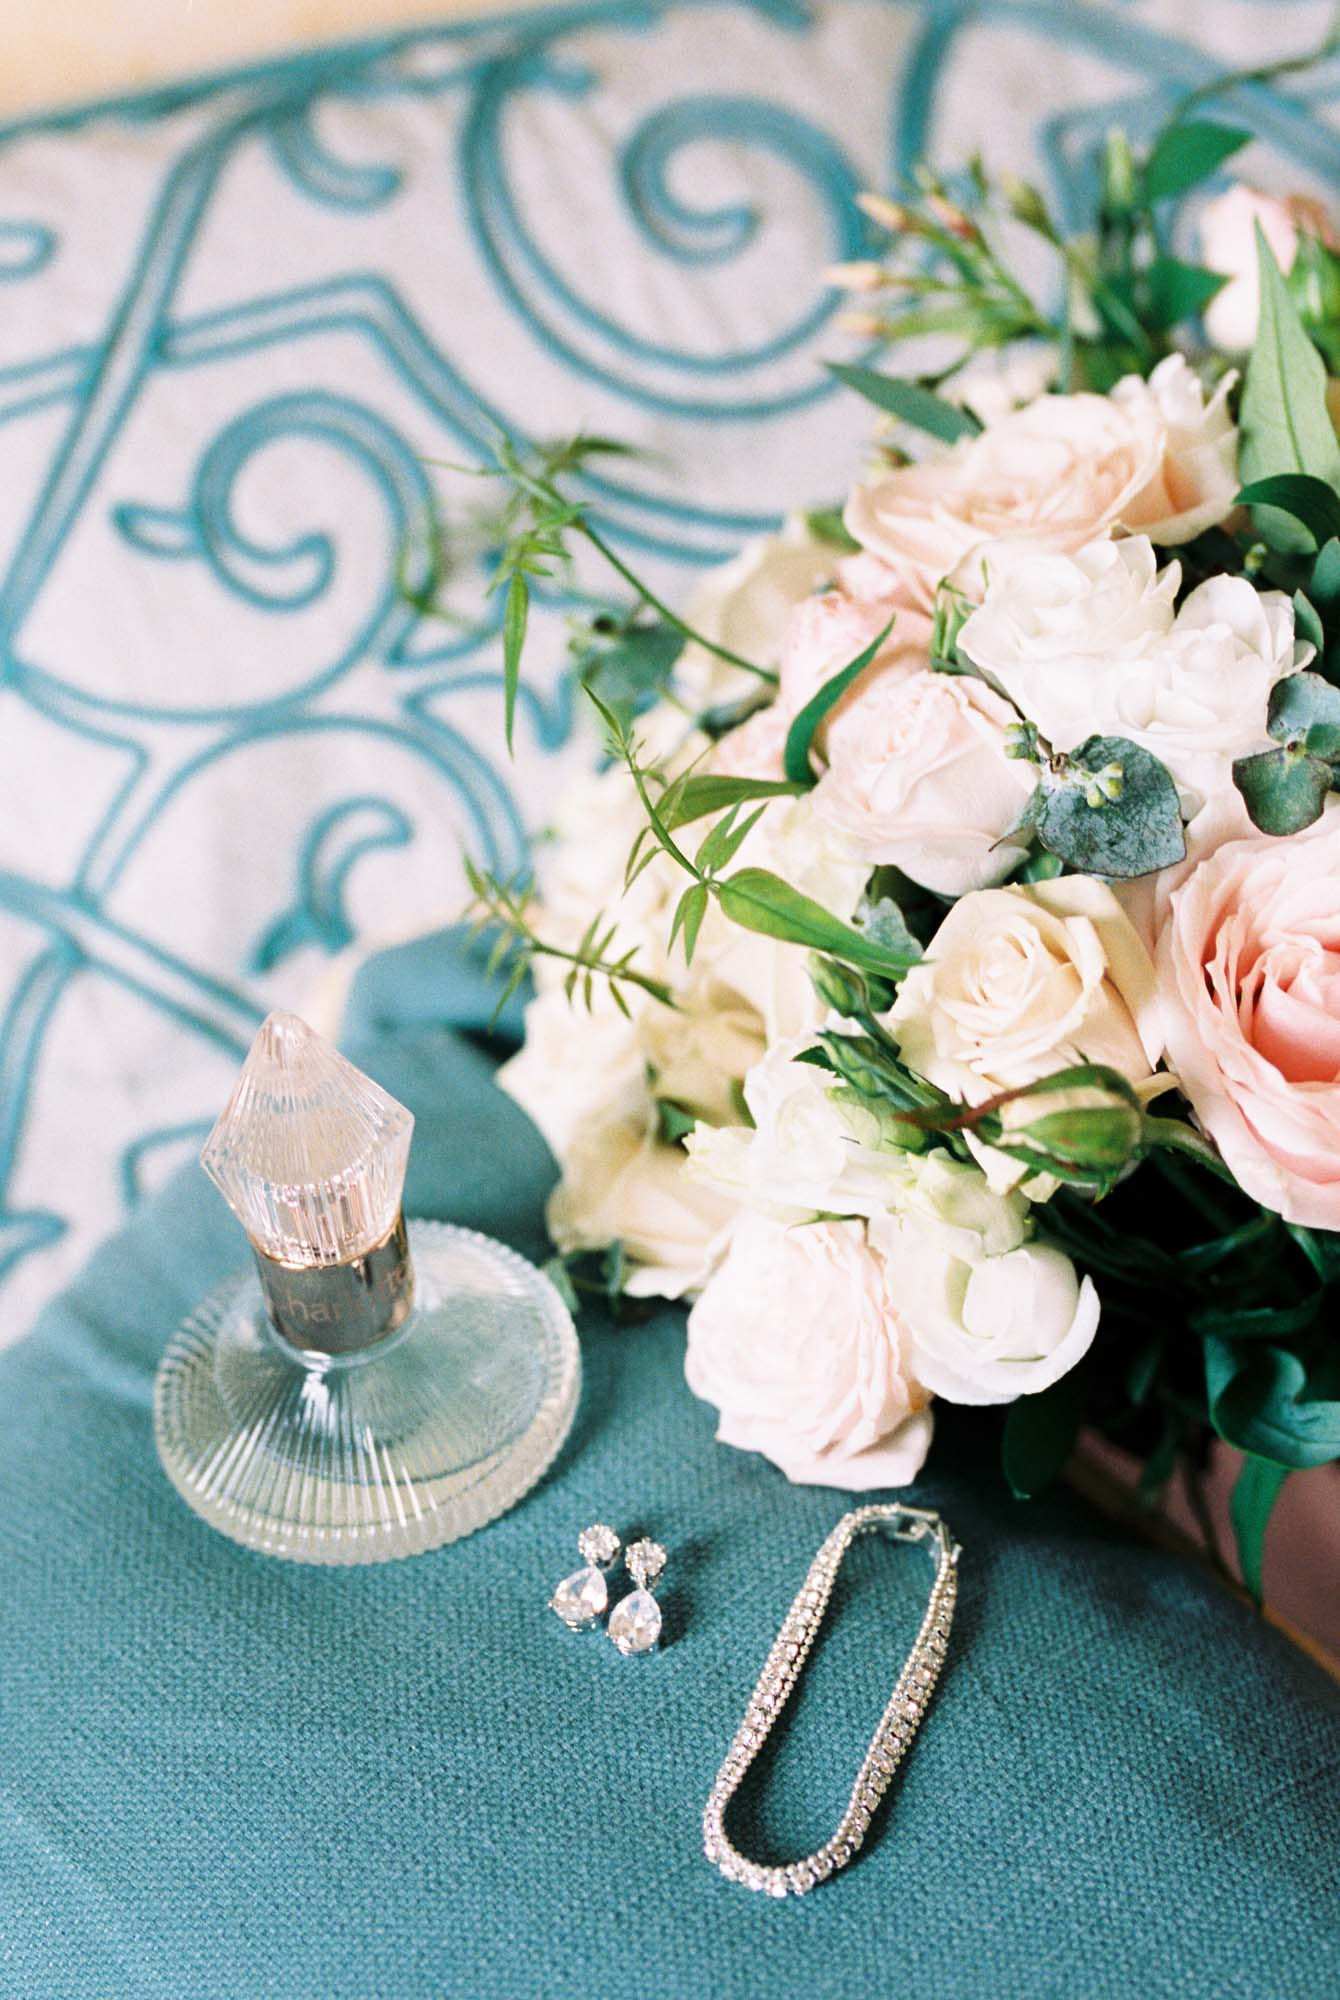 Classic and elegant bridal style. Rose bouquet, wedding perfume and diamond jewellery